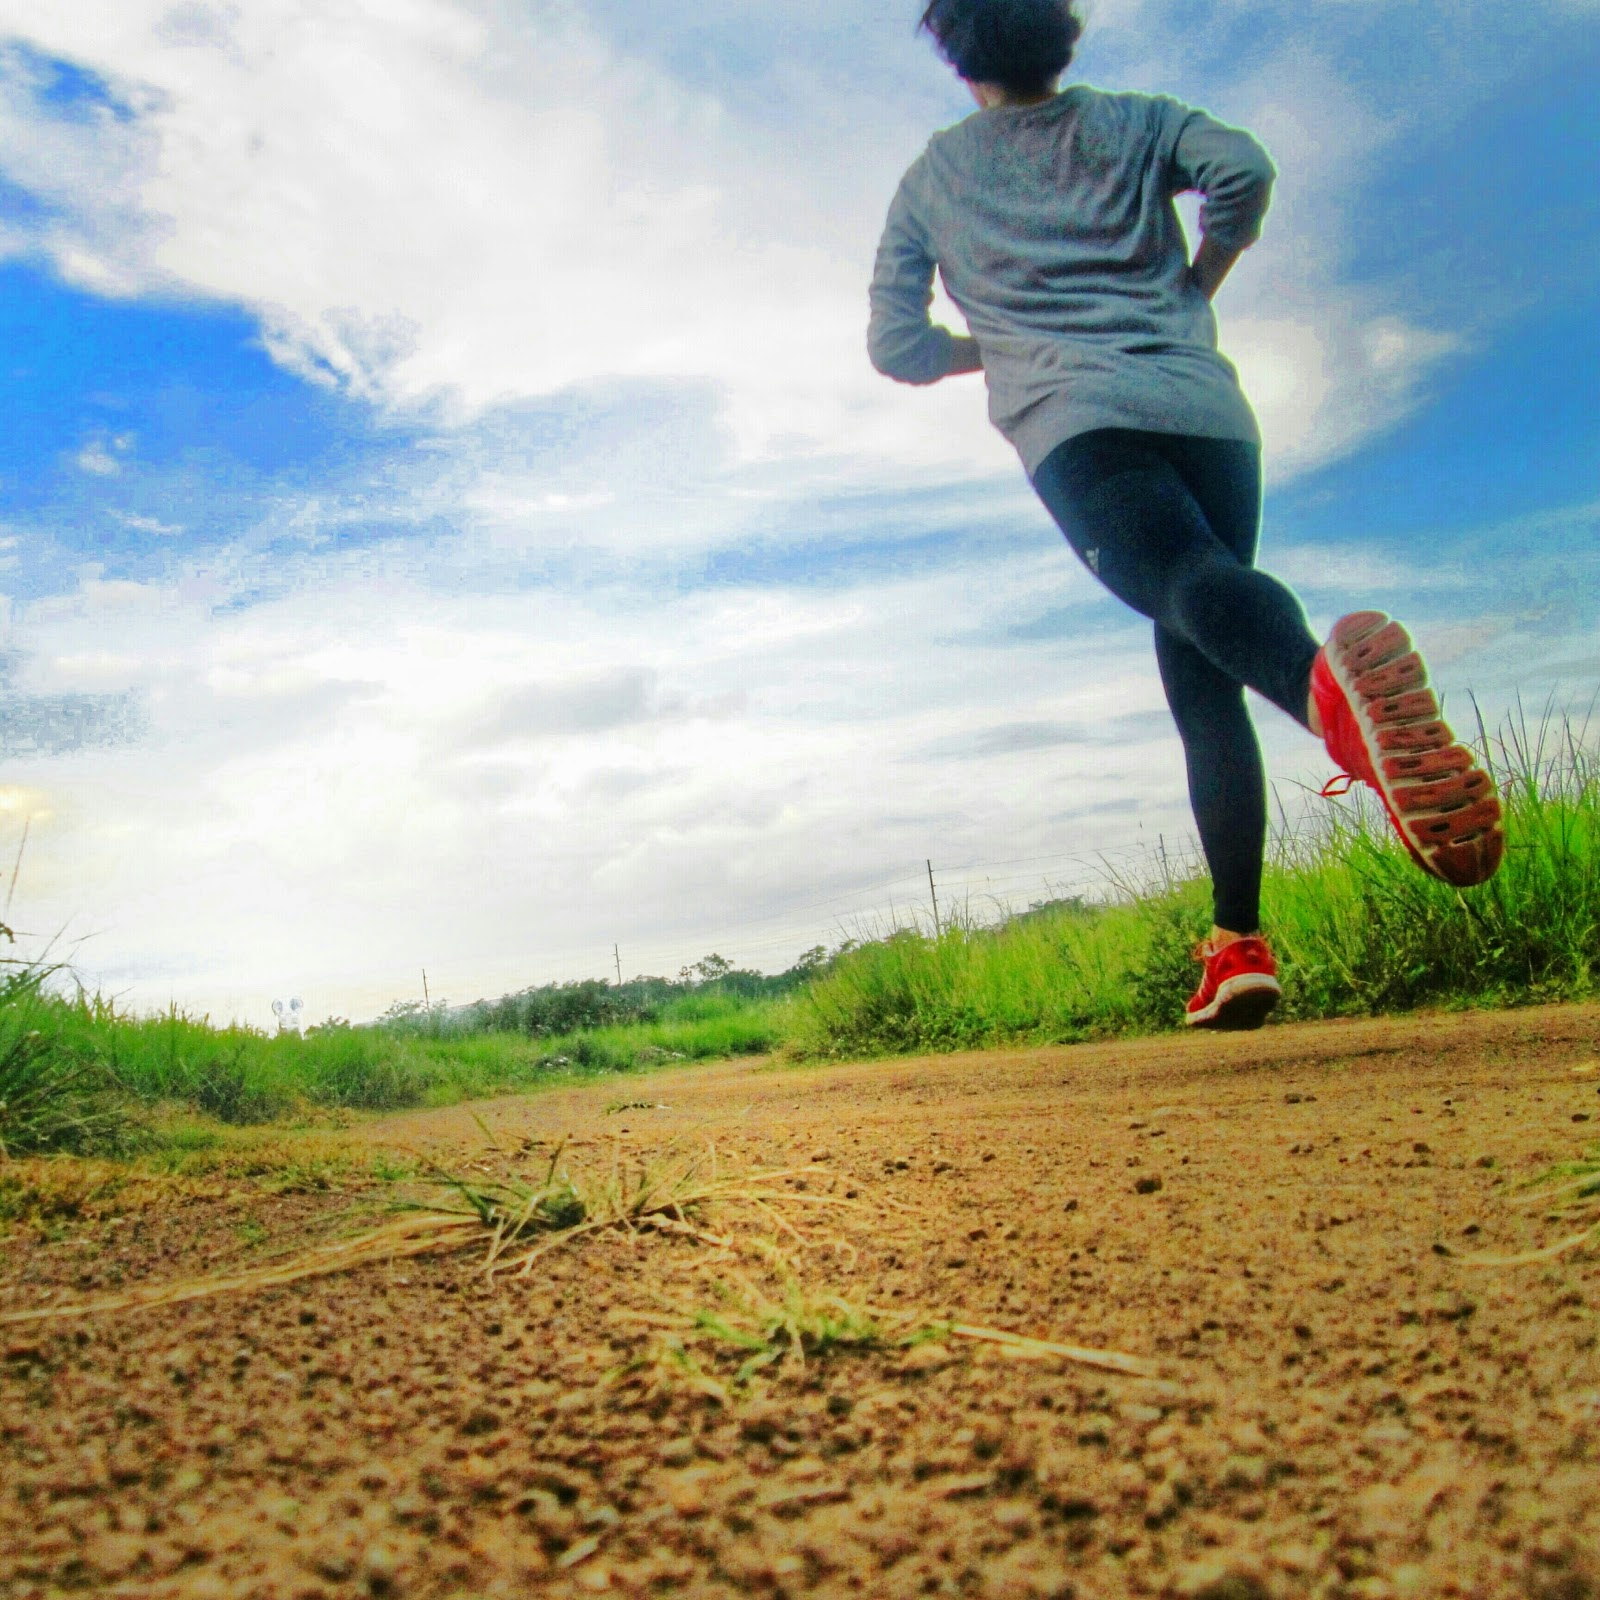 Trail Running in Macapagal, Cagayan de Oro City